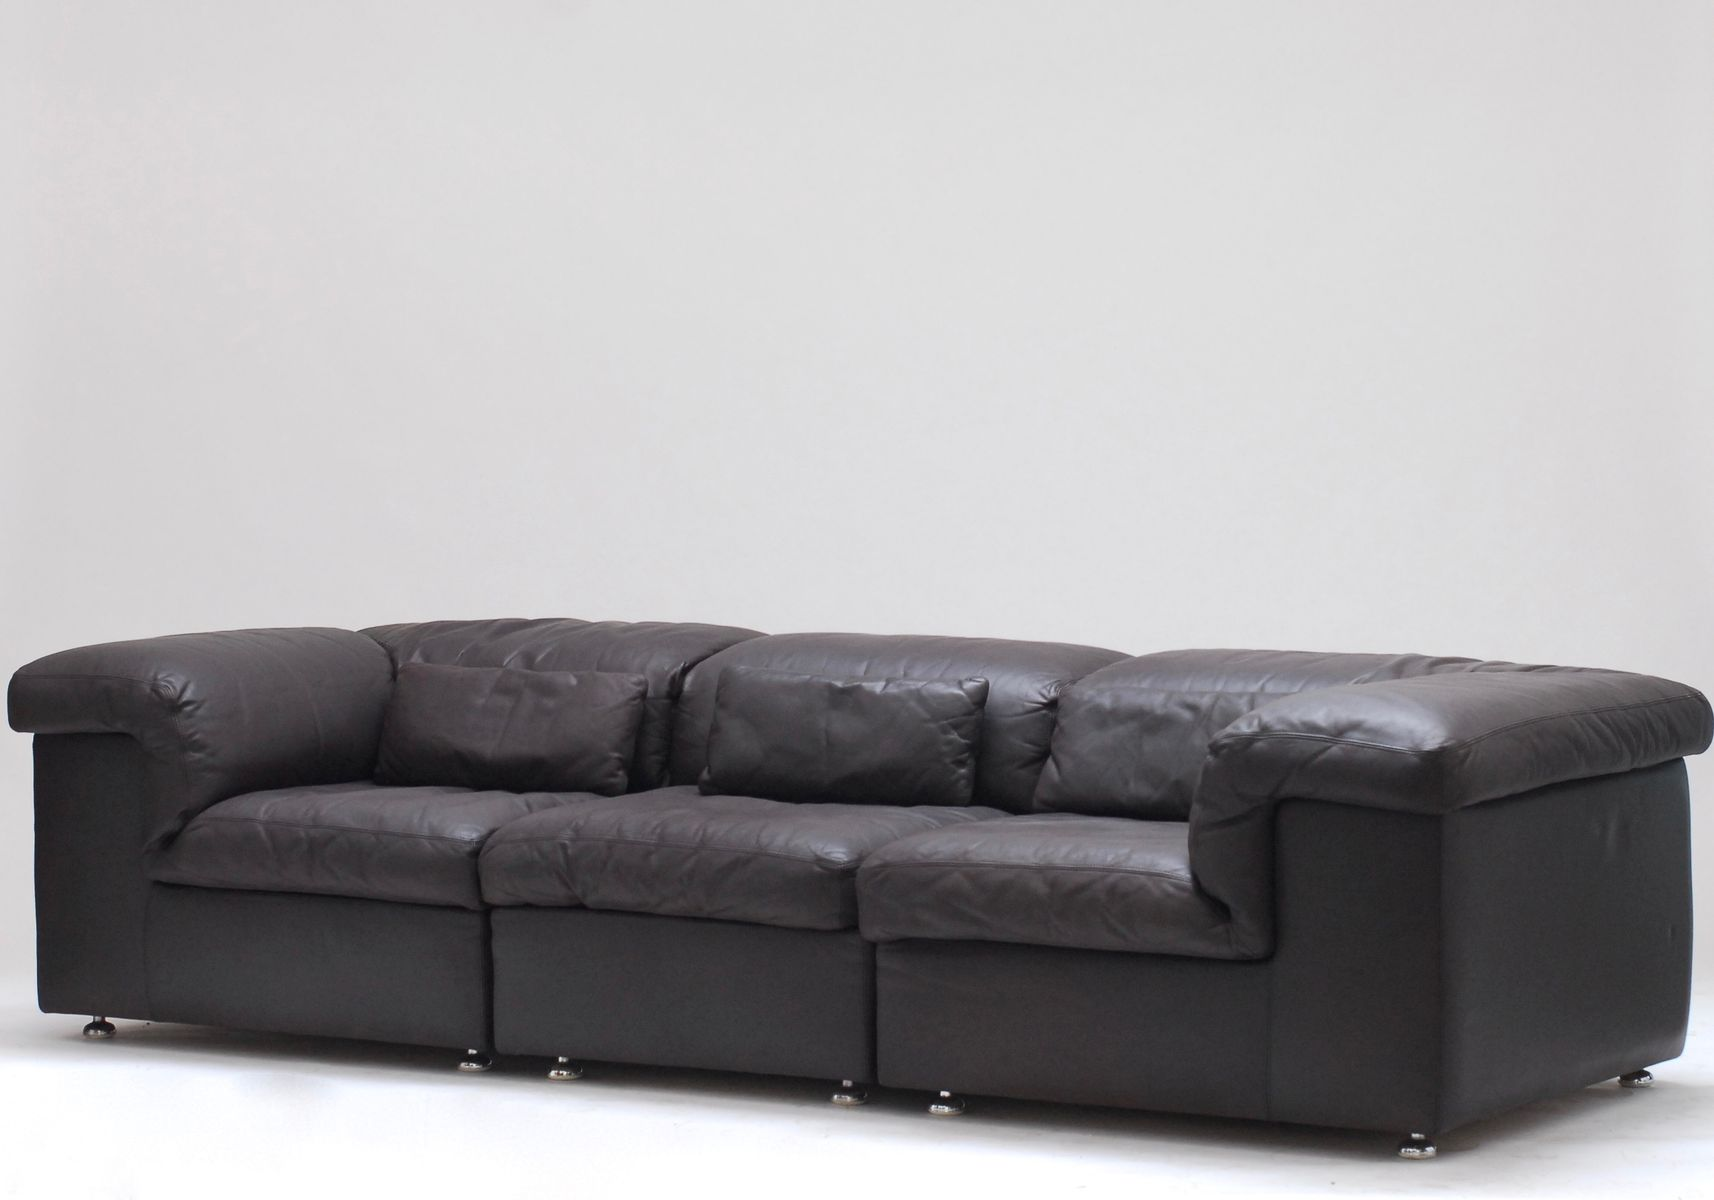 Vintage Jumbo Sofa from Durlet 1975 for sale at Pamono